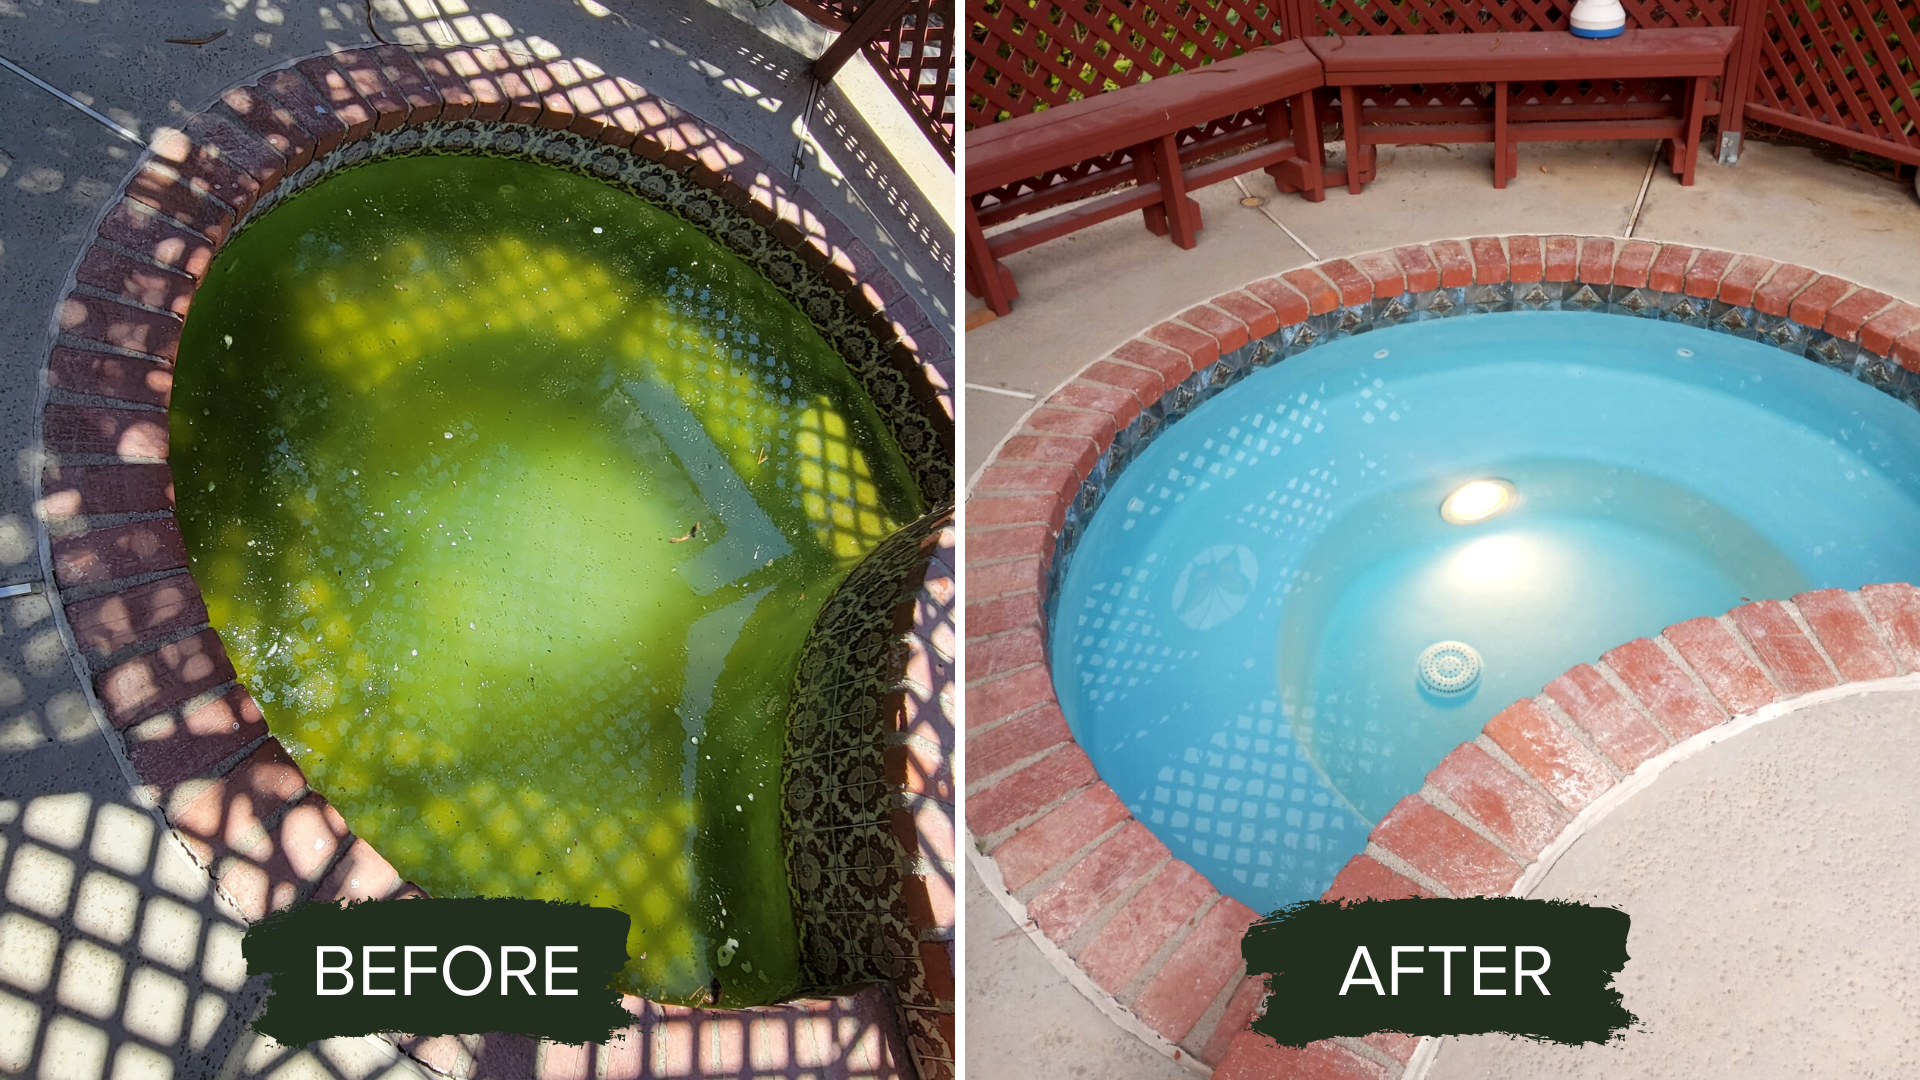 BEFORE AFTER POOL REMODEL